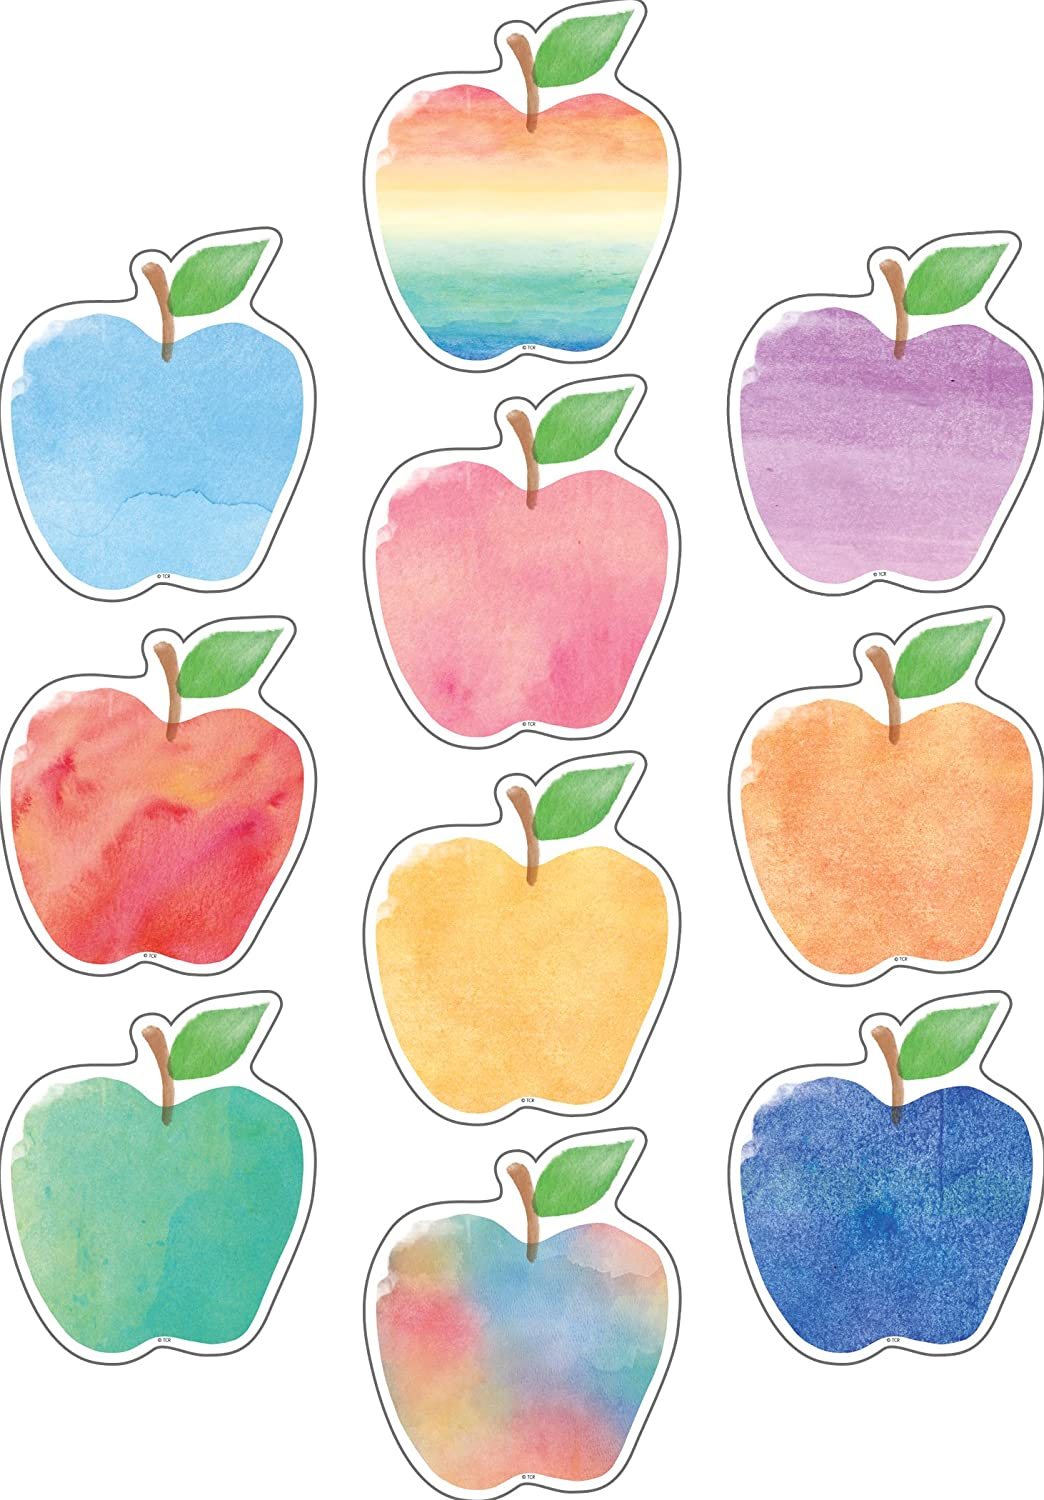 Watercolor Apples Accents